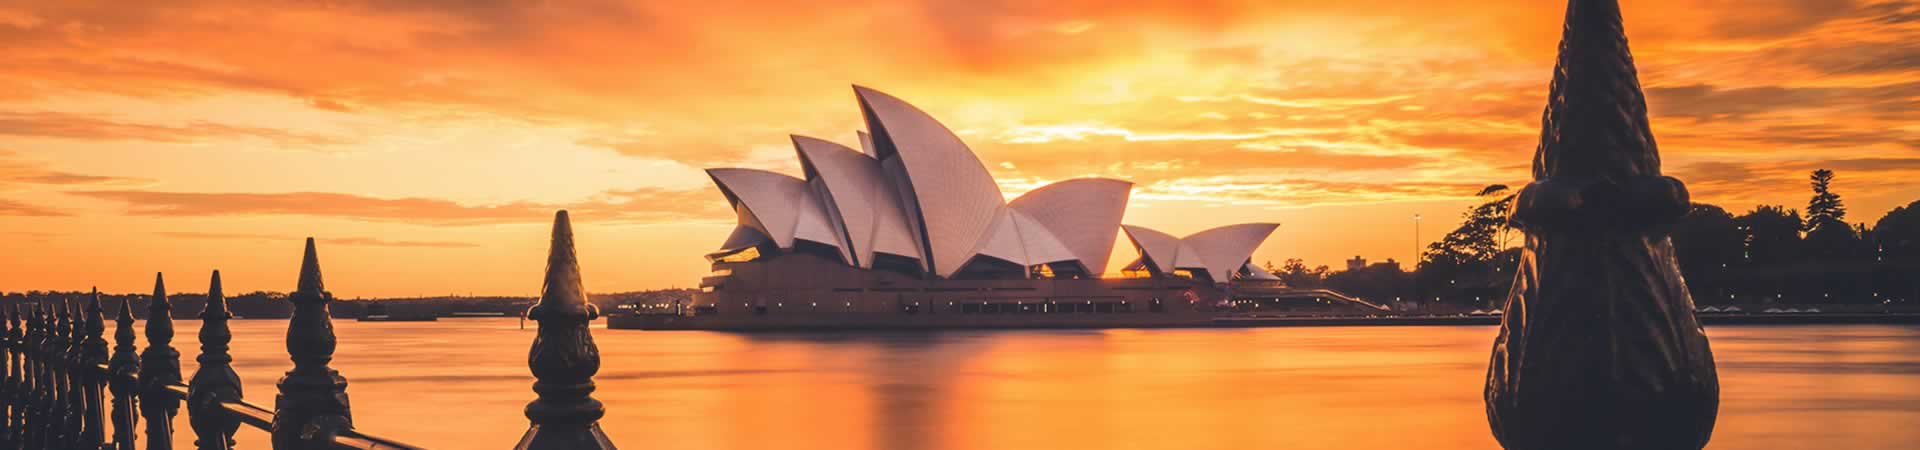 Leisure Travel Slider – The Opera House in Sydney Australia